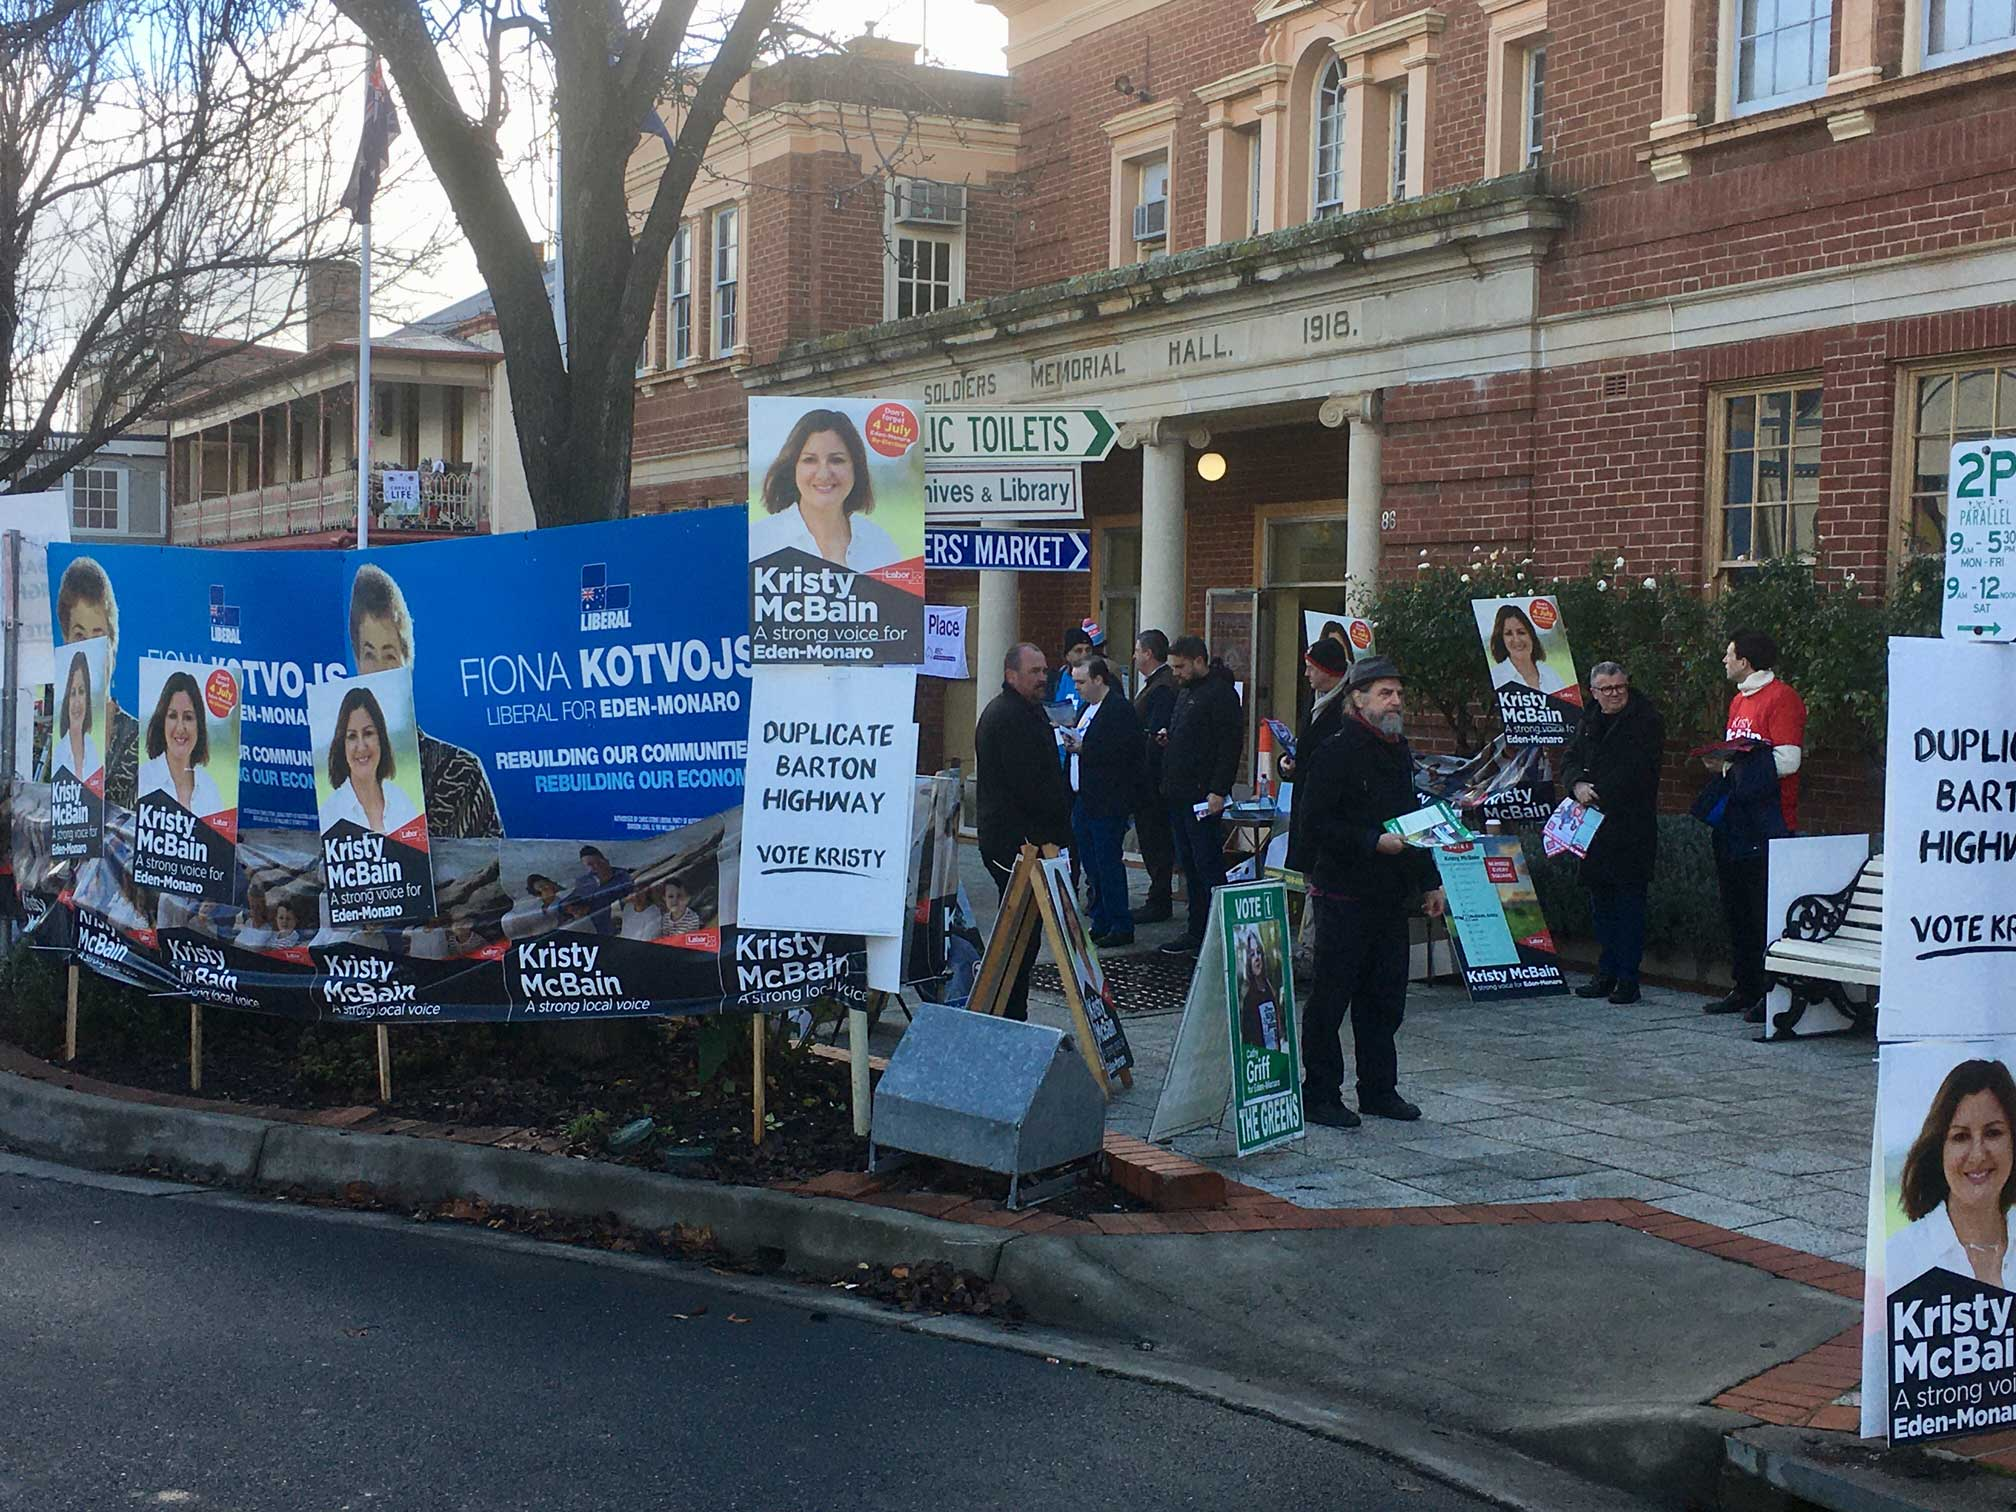 Election Day - Yass Soldiers Memorial Hall gardens staked oyt with candidate signage